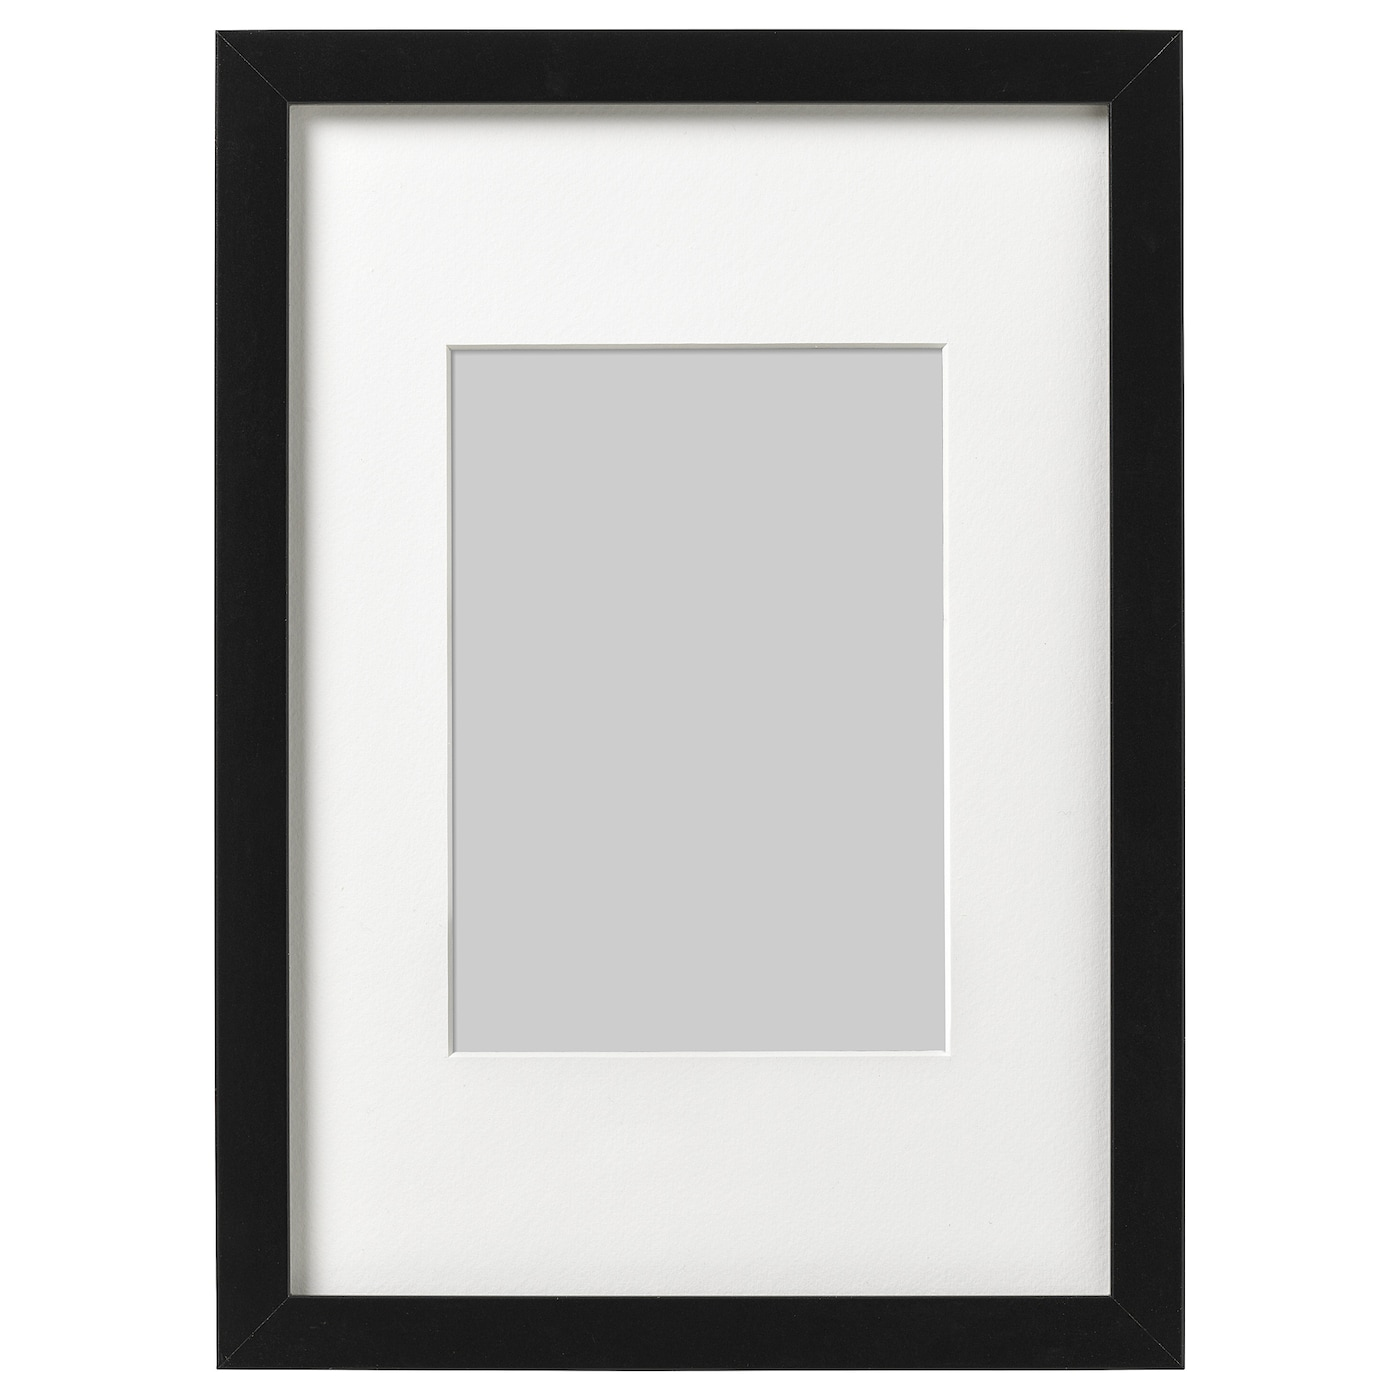 Photo Frames - Picture Frames & Multi Photo Frames | IKEA